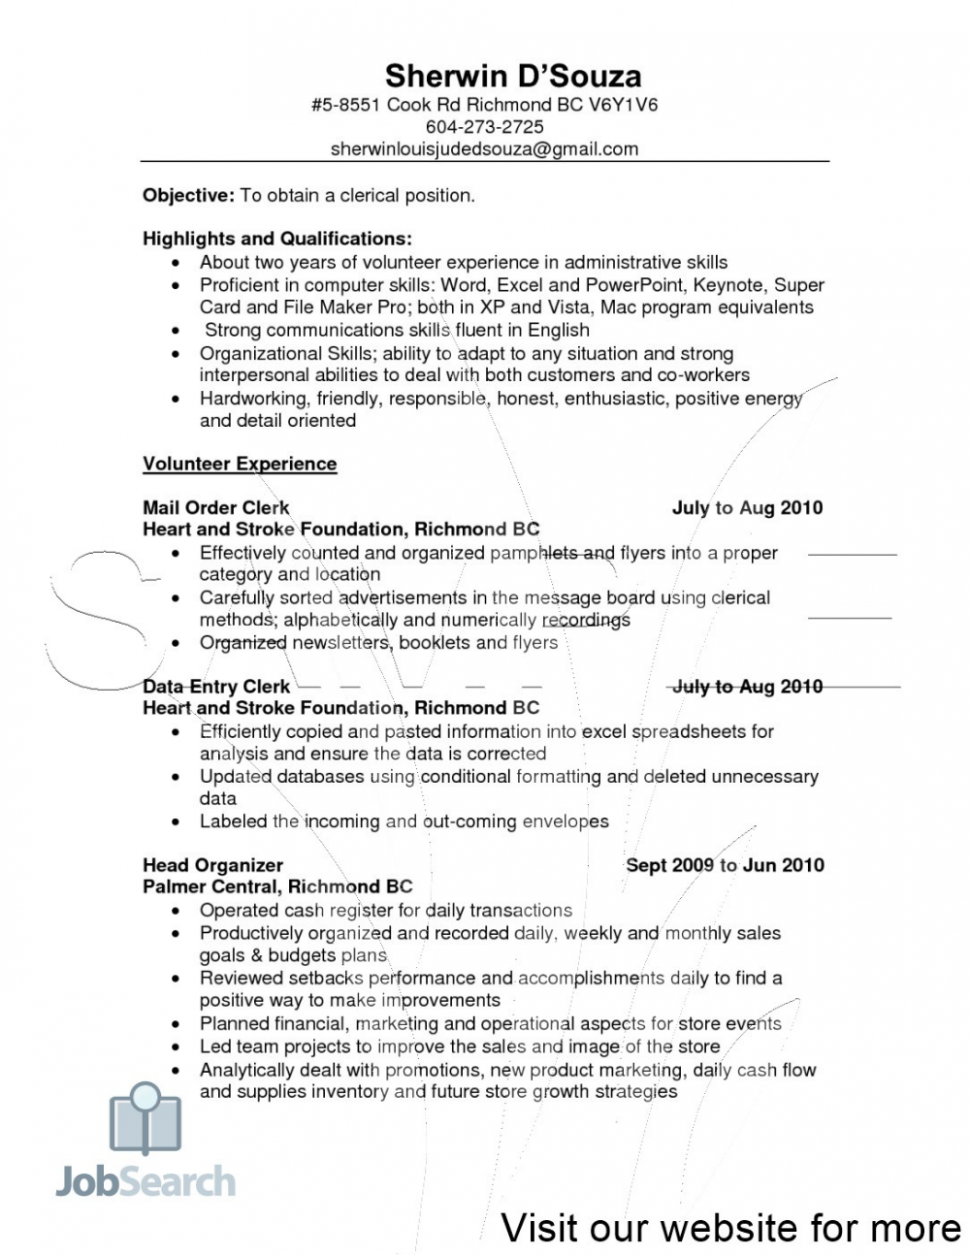 Resume Objective For Any Job Position In 2021 Resume Examples Job Resume Examples Resume Objective Examples